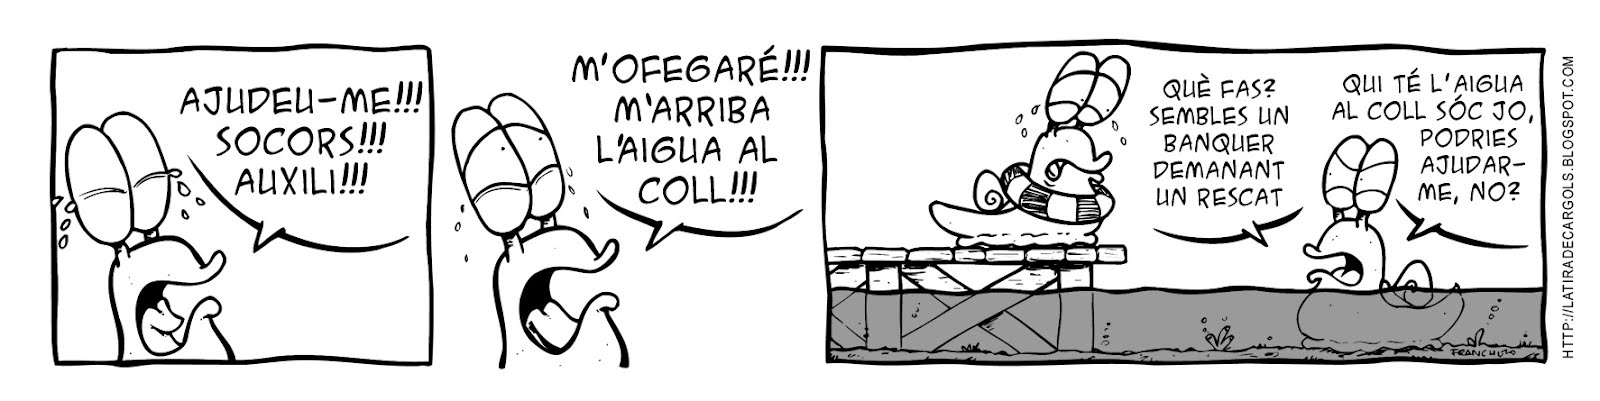 Tira comica 127 del webcomic Cargols del dibuixant Franchu de Barcelona